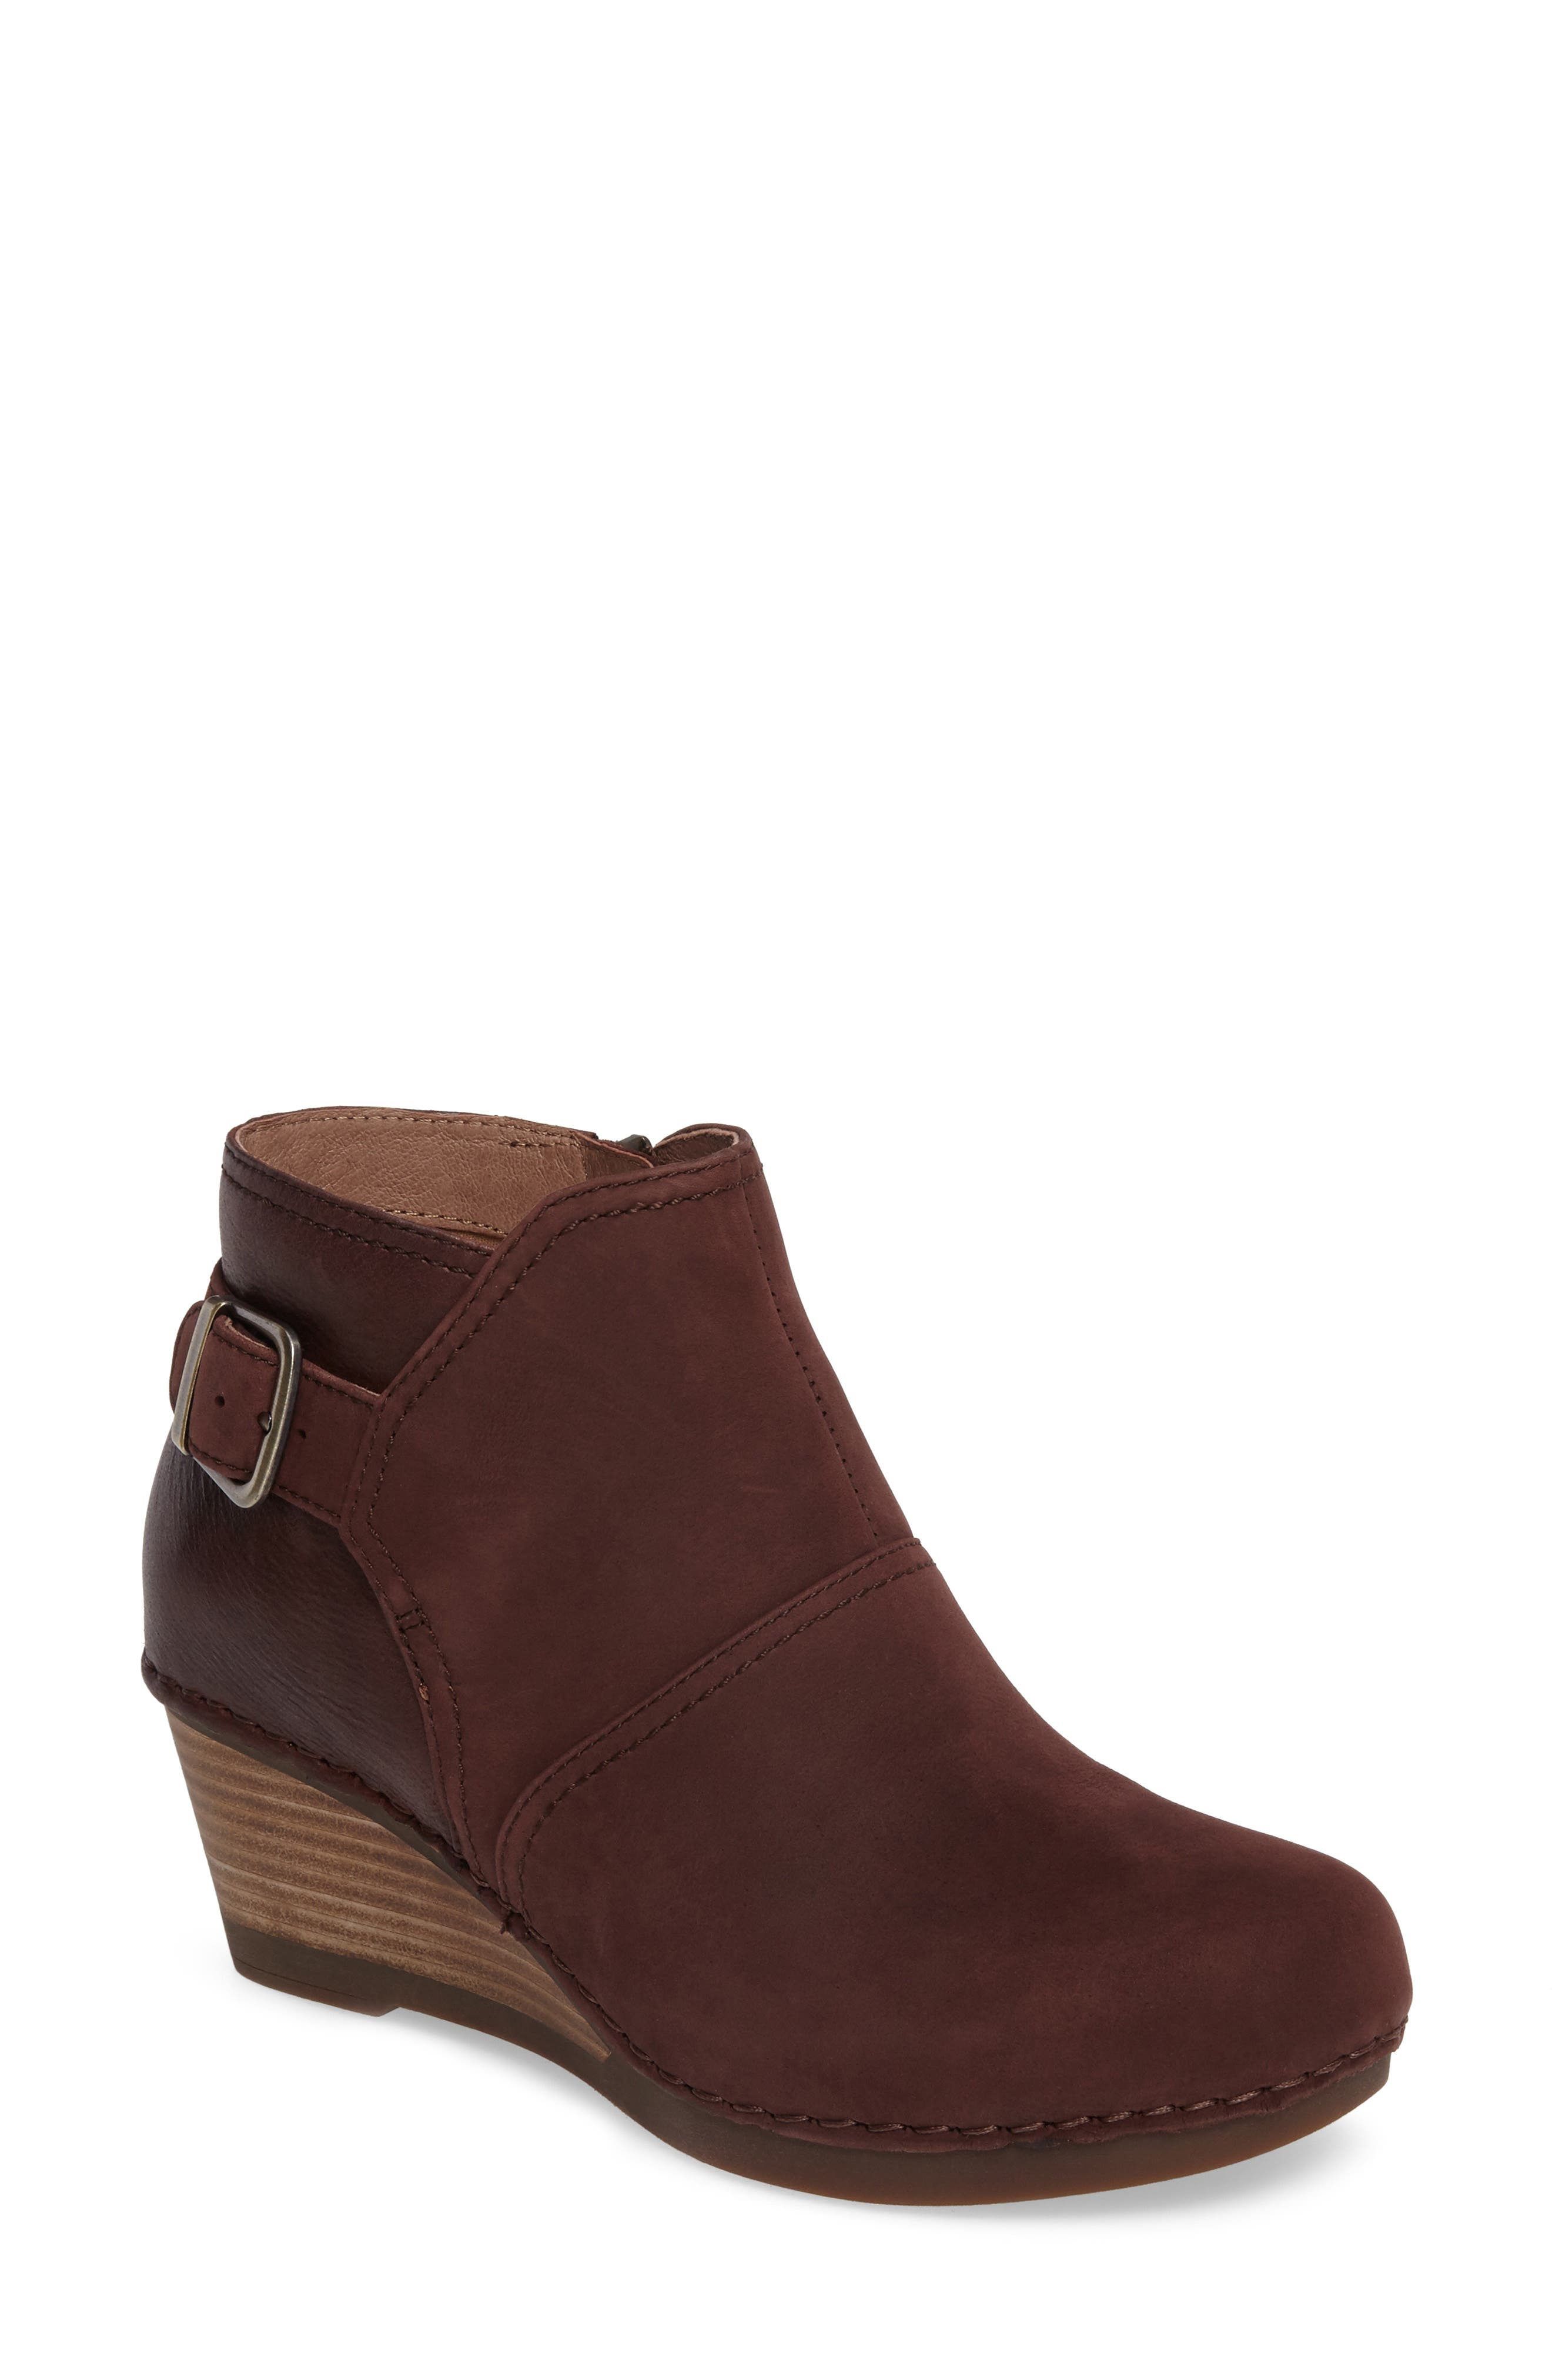 'Shirley' Wedge Bootie,                             Main thumbnail 5, color,